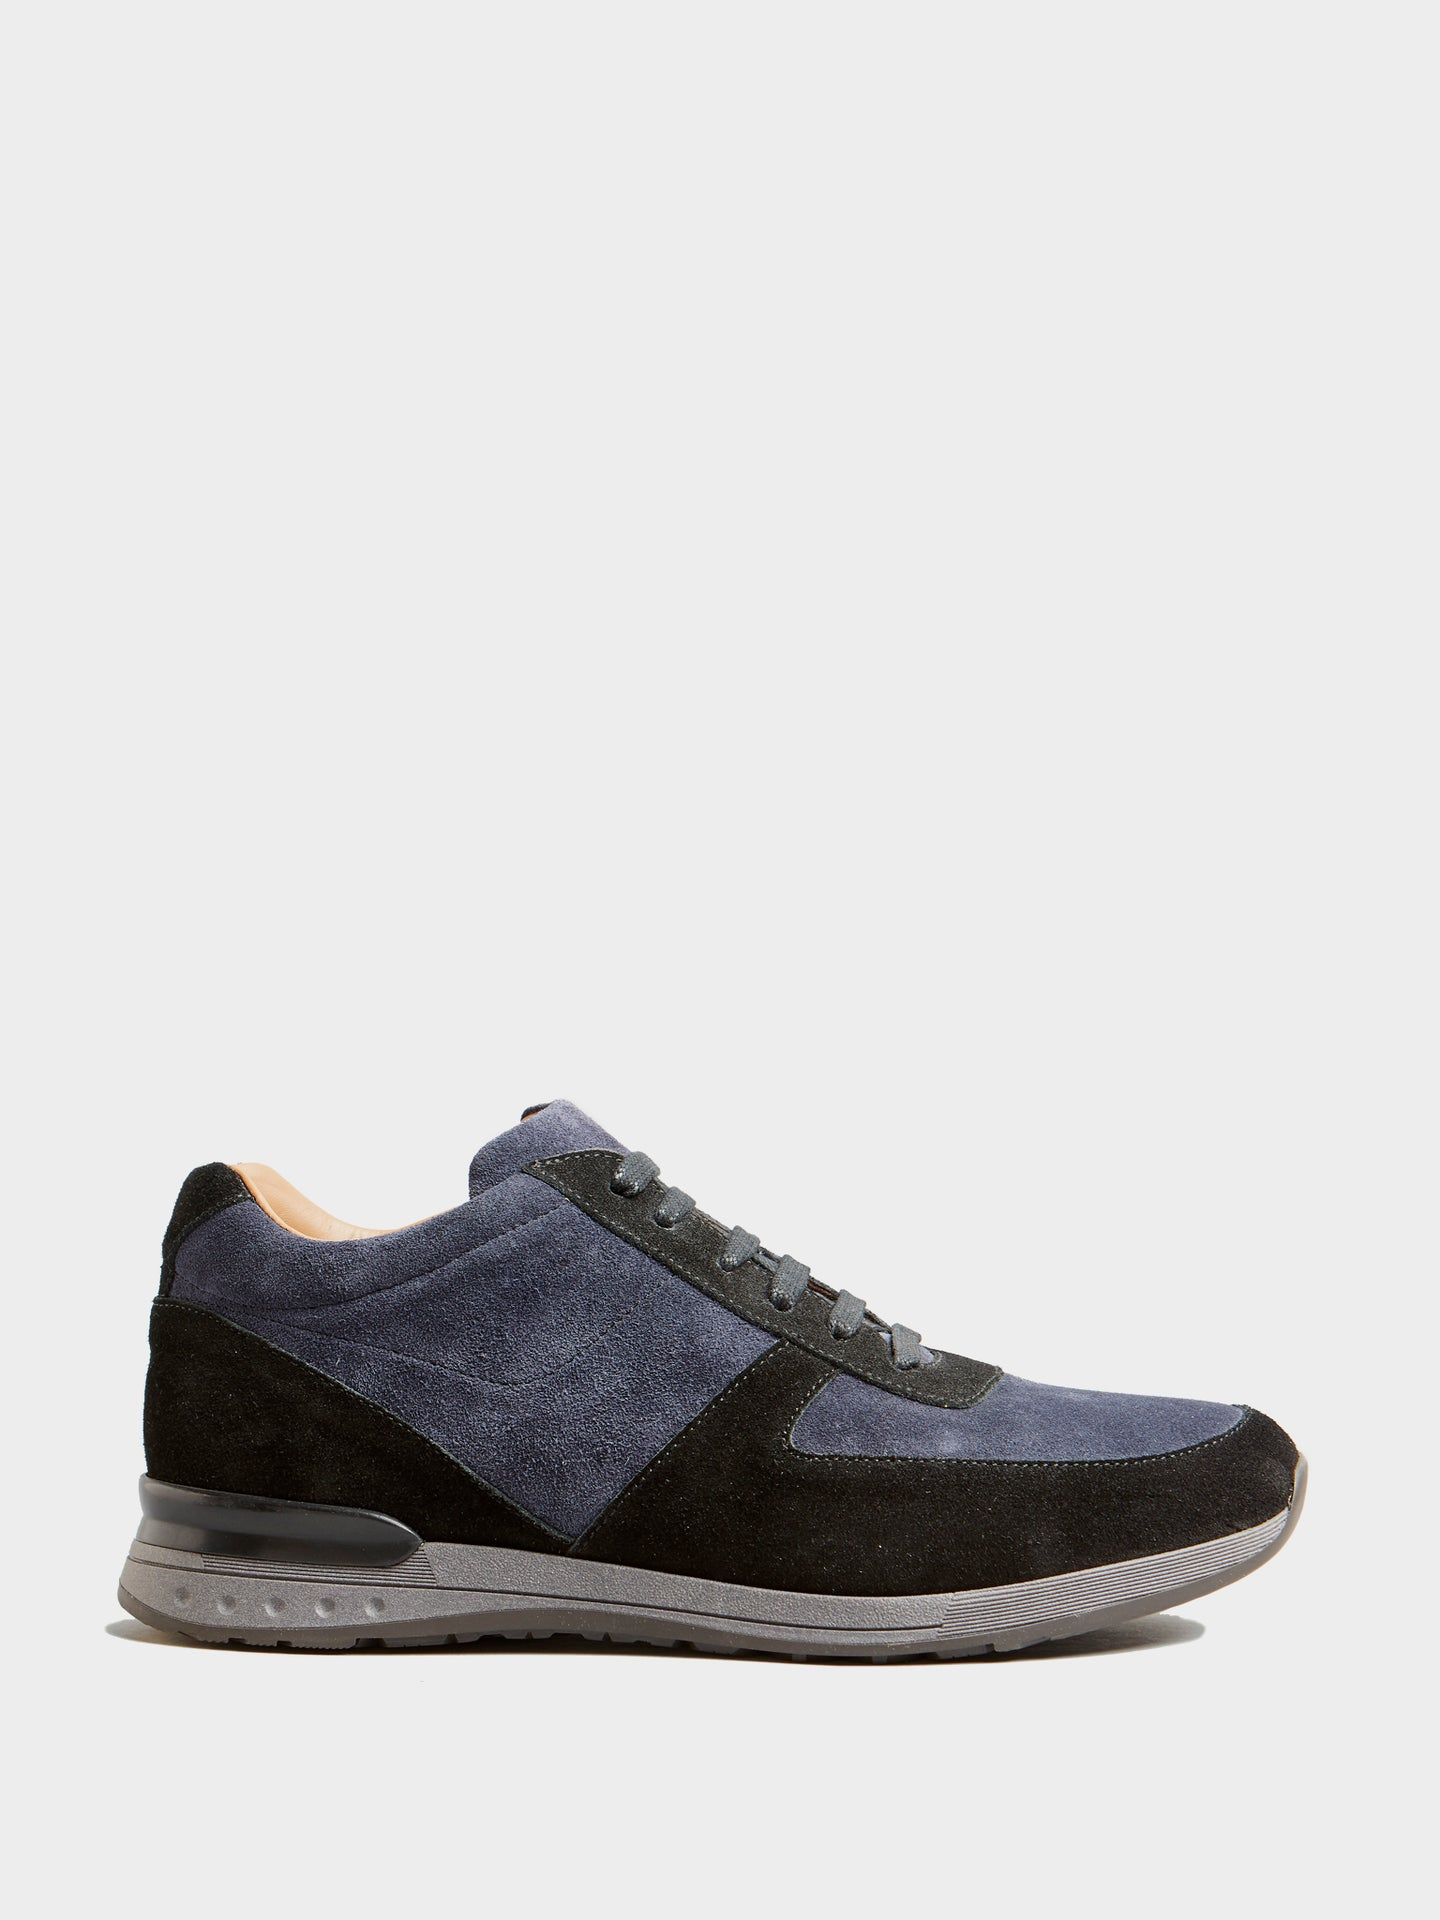 Corneliani Dress Trainer Suede (Blue and Black)